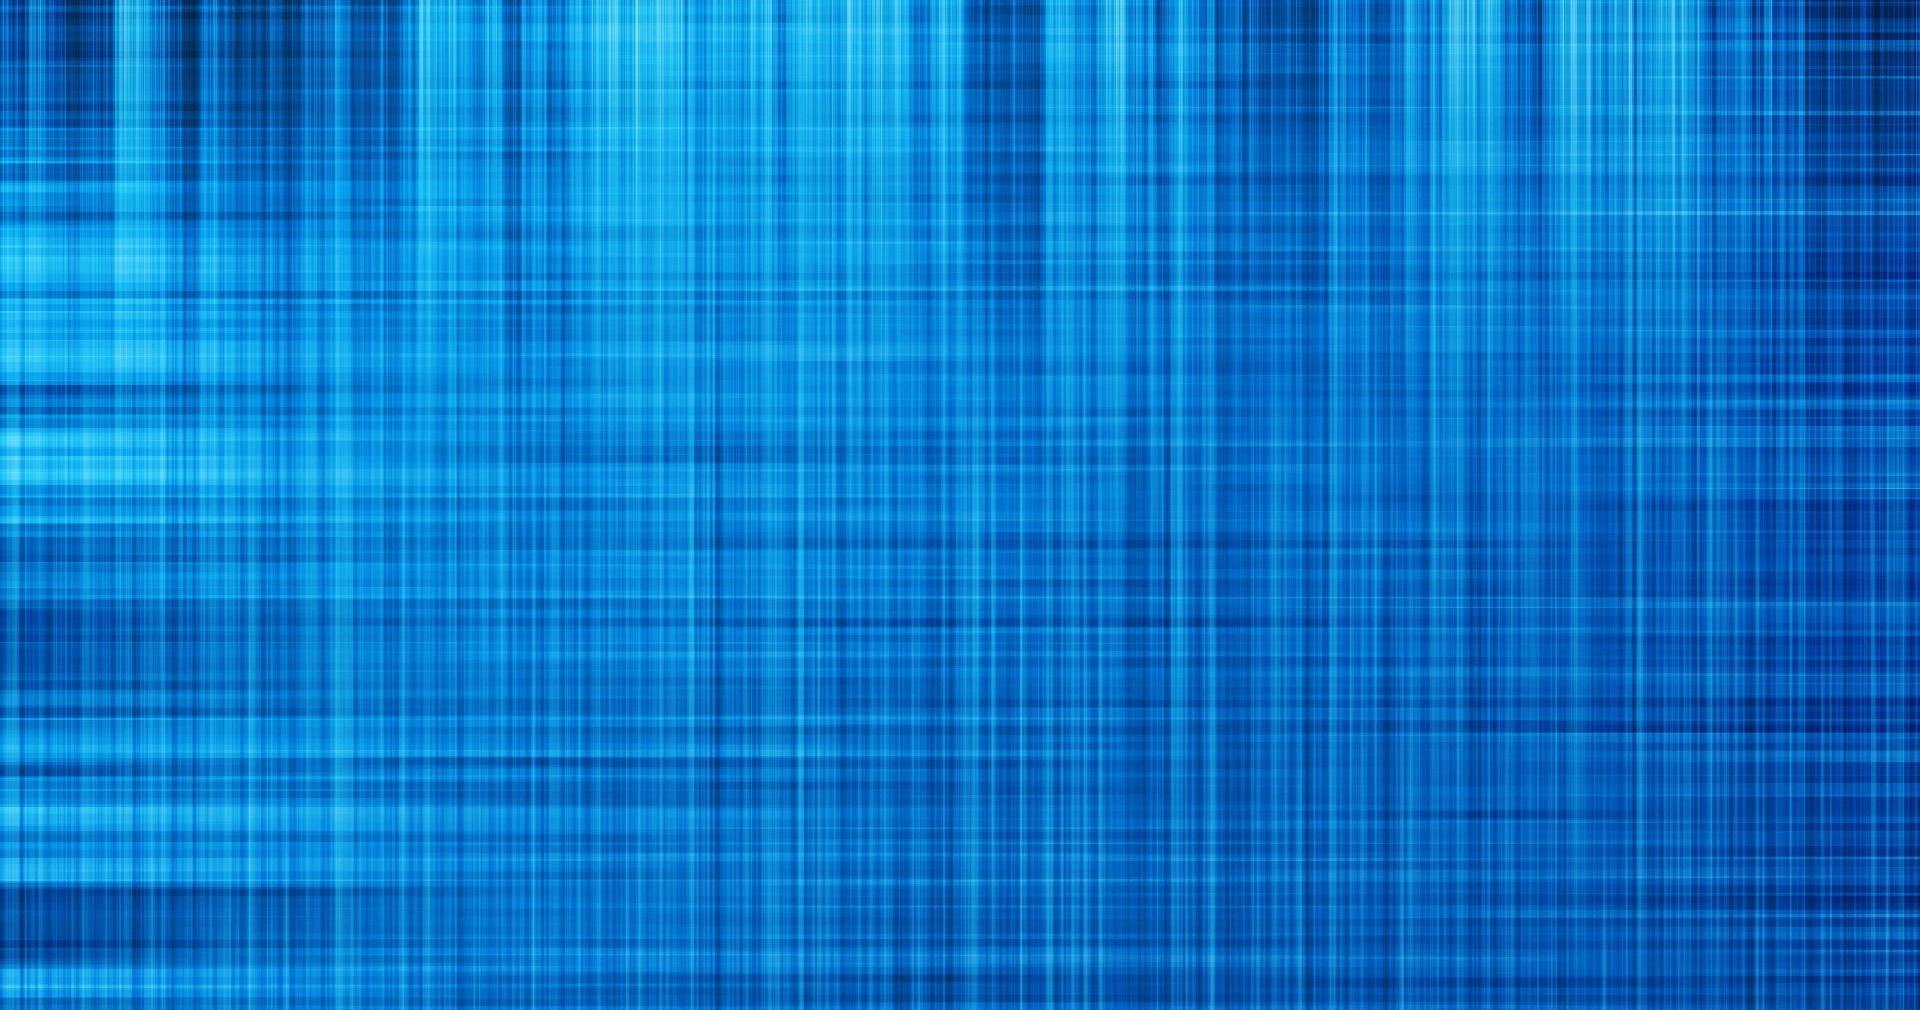 Blue lines wallpapers HD quality